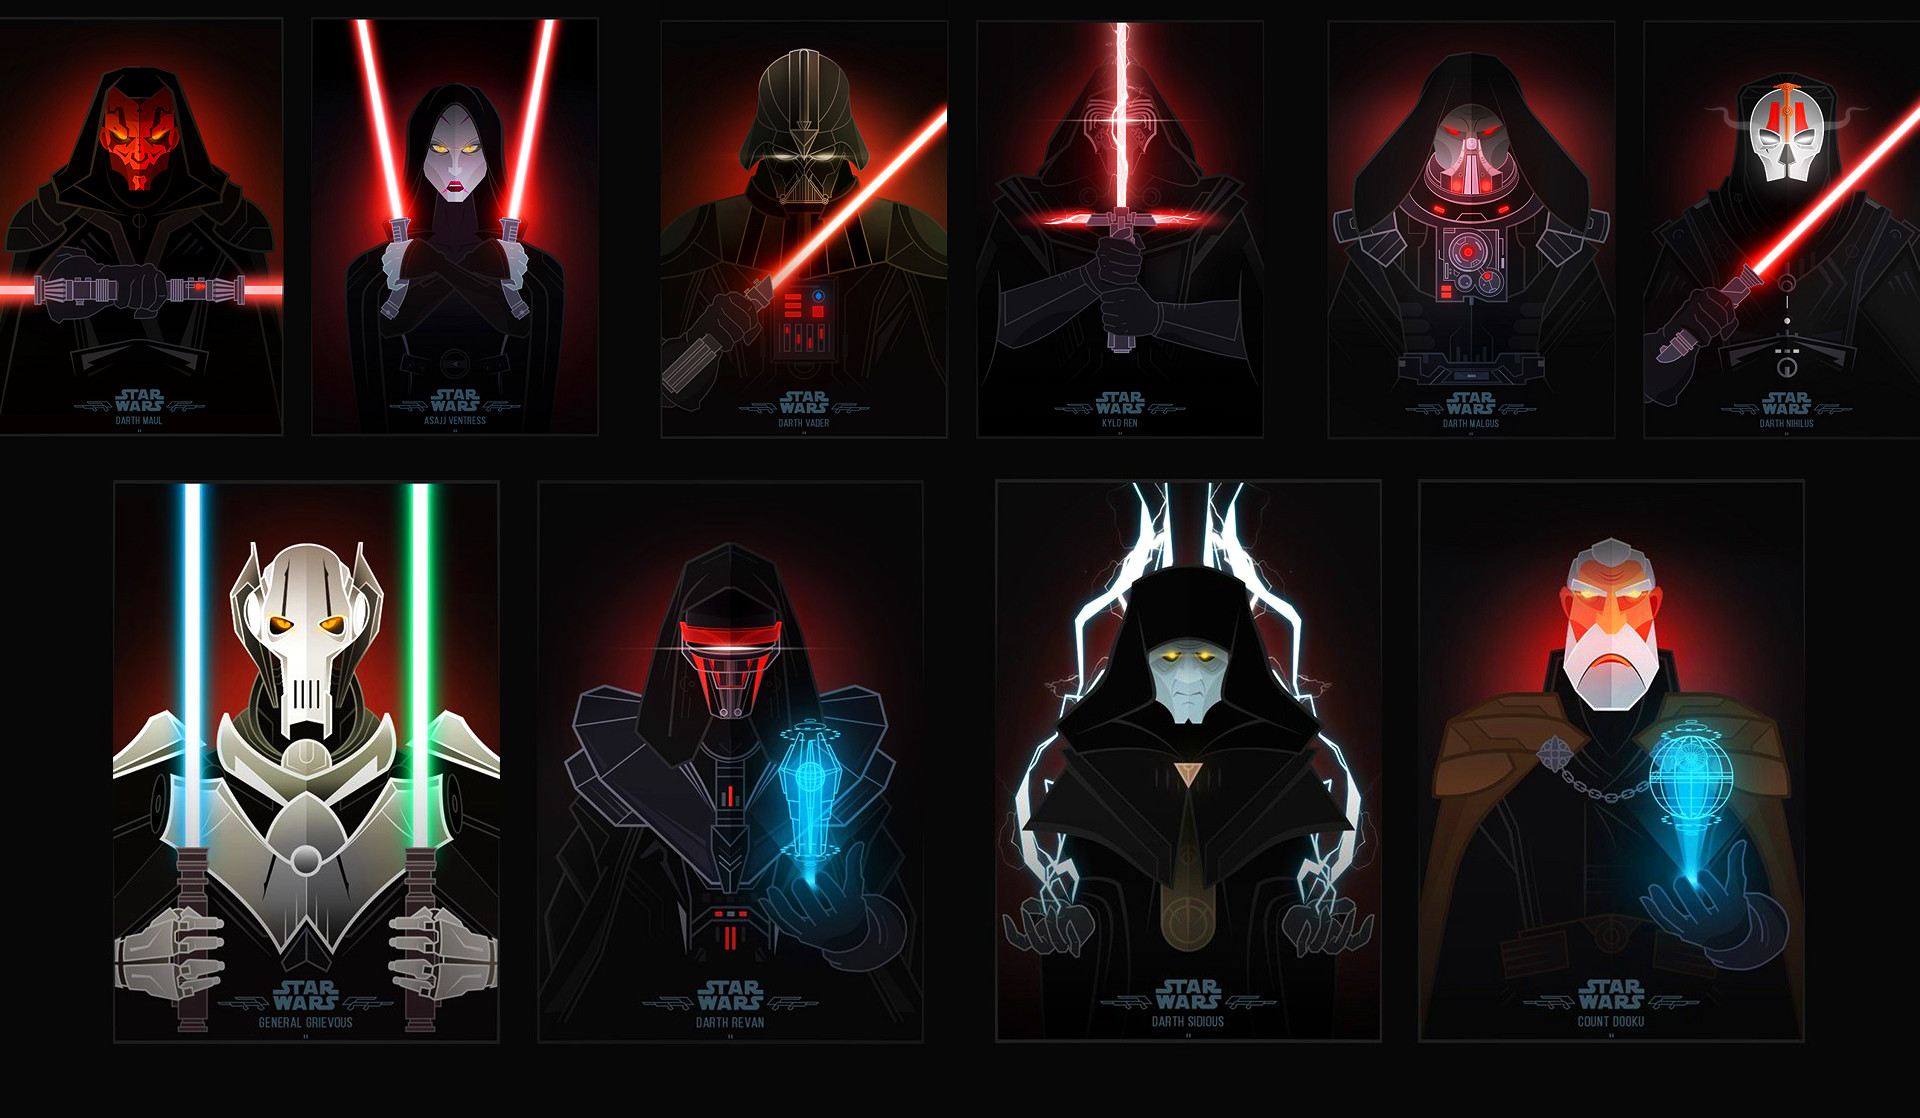 1920x1118 Jedi vs Sith HD Wallpaper | Wallpapers | Pinterest | Sith and Hd wallpaper